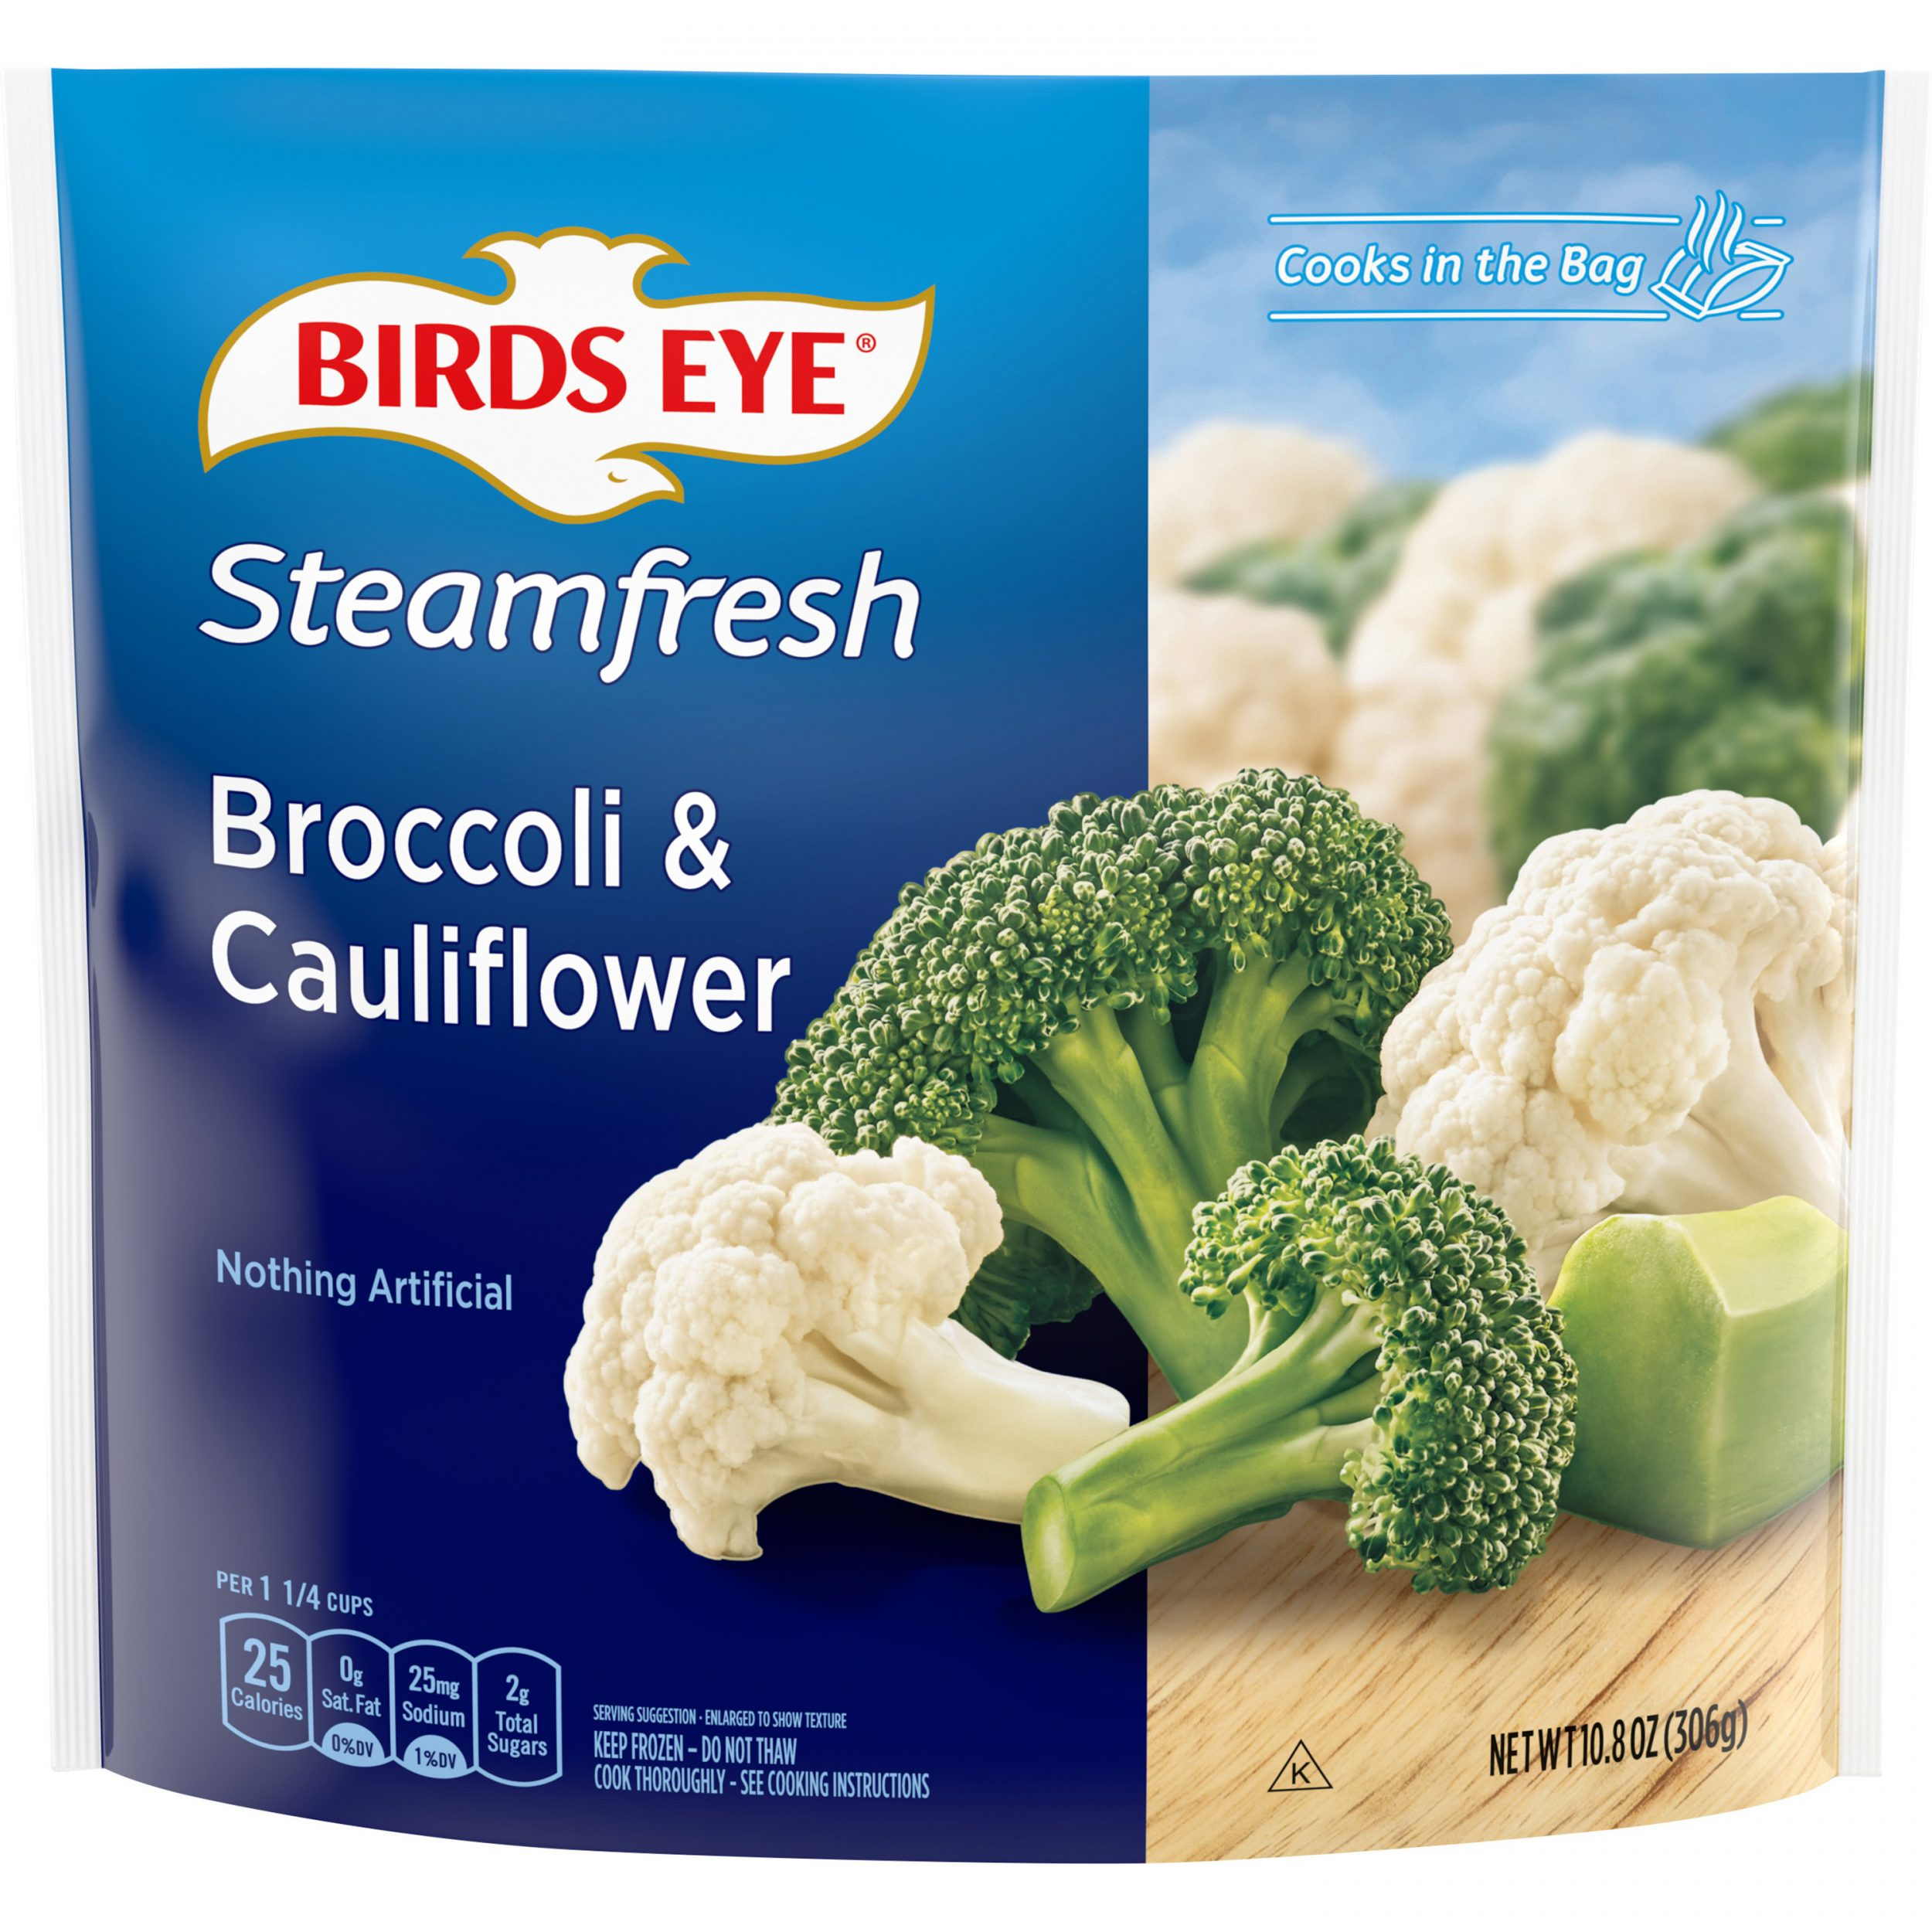 Birds Eye Steamfresh Mixtures Broccoli & Cauliflower